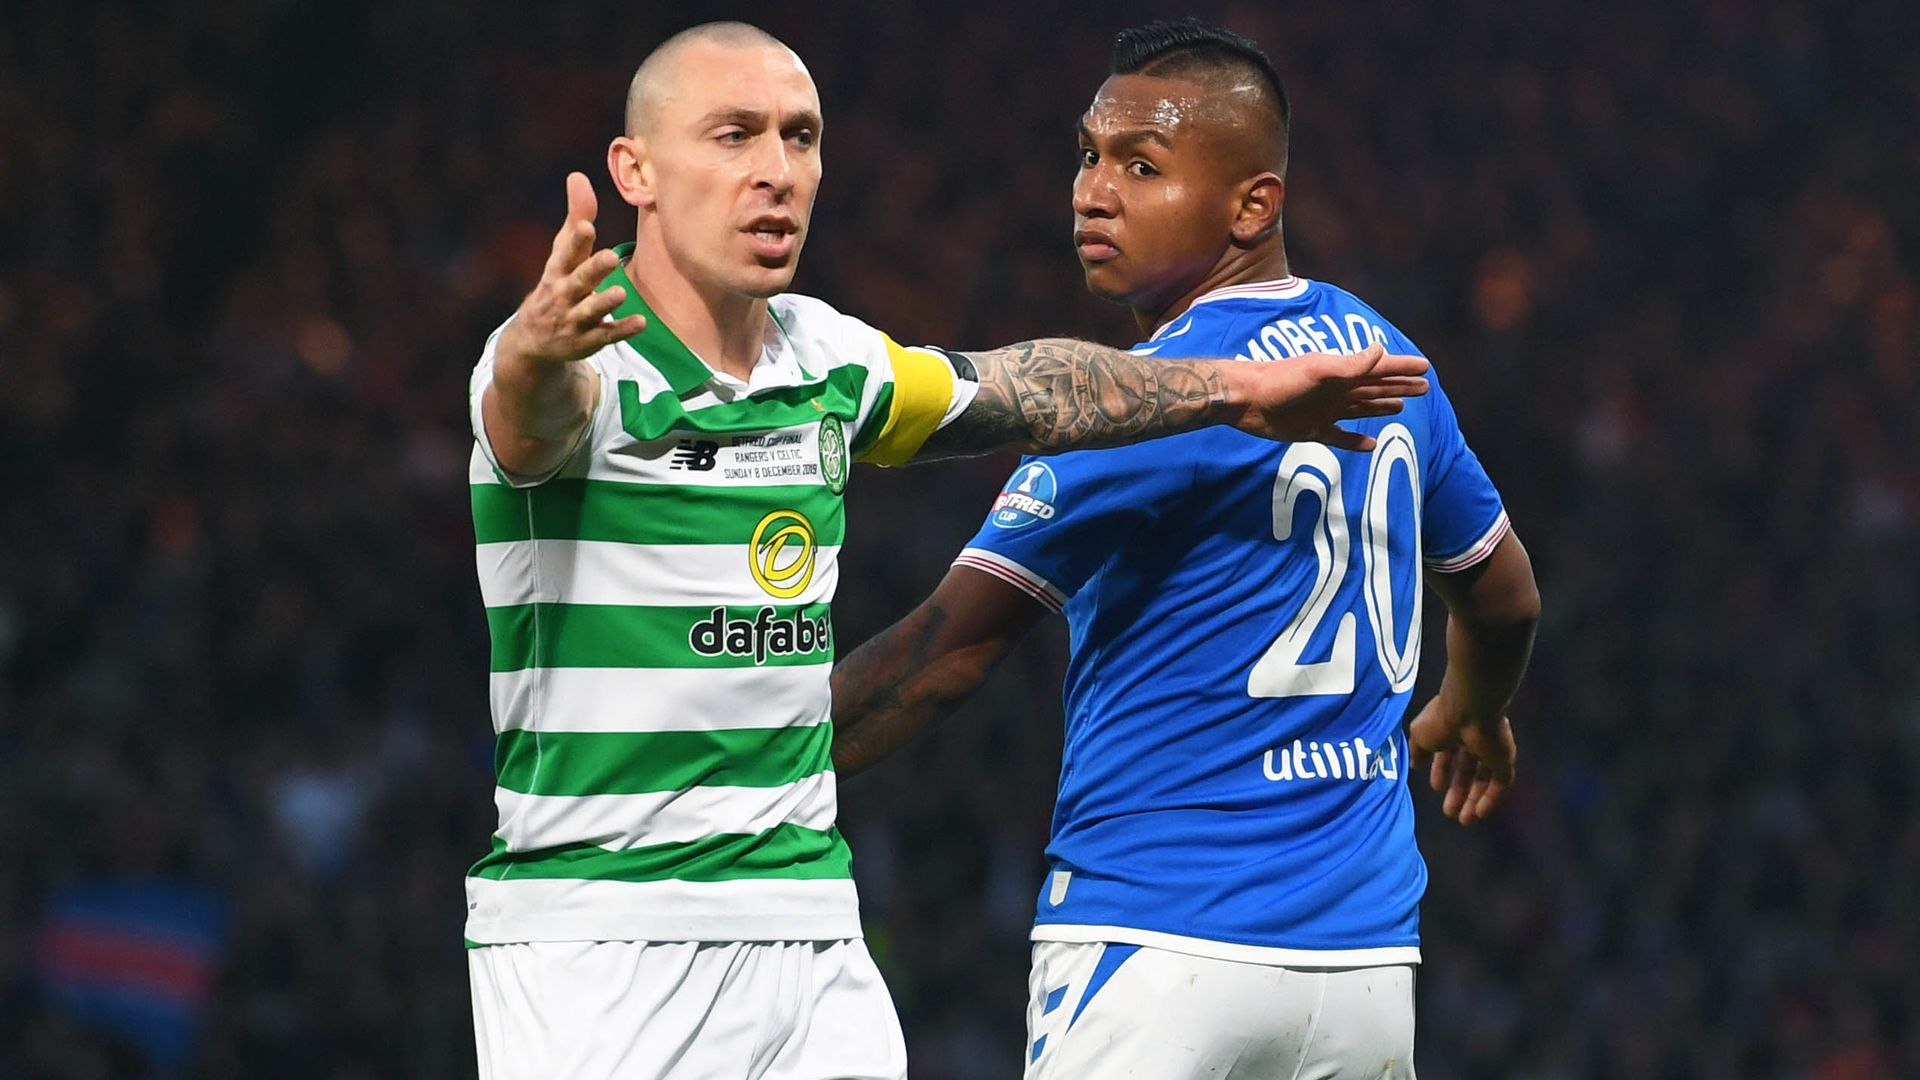 'Old Firm clashes will decide who wins the title'